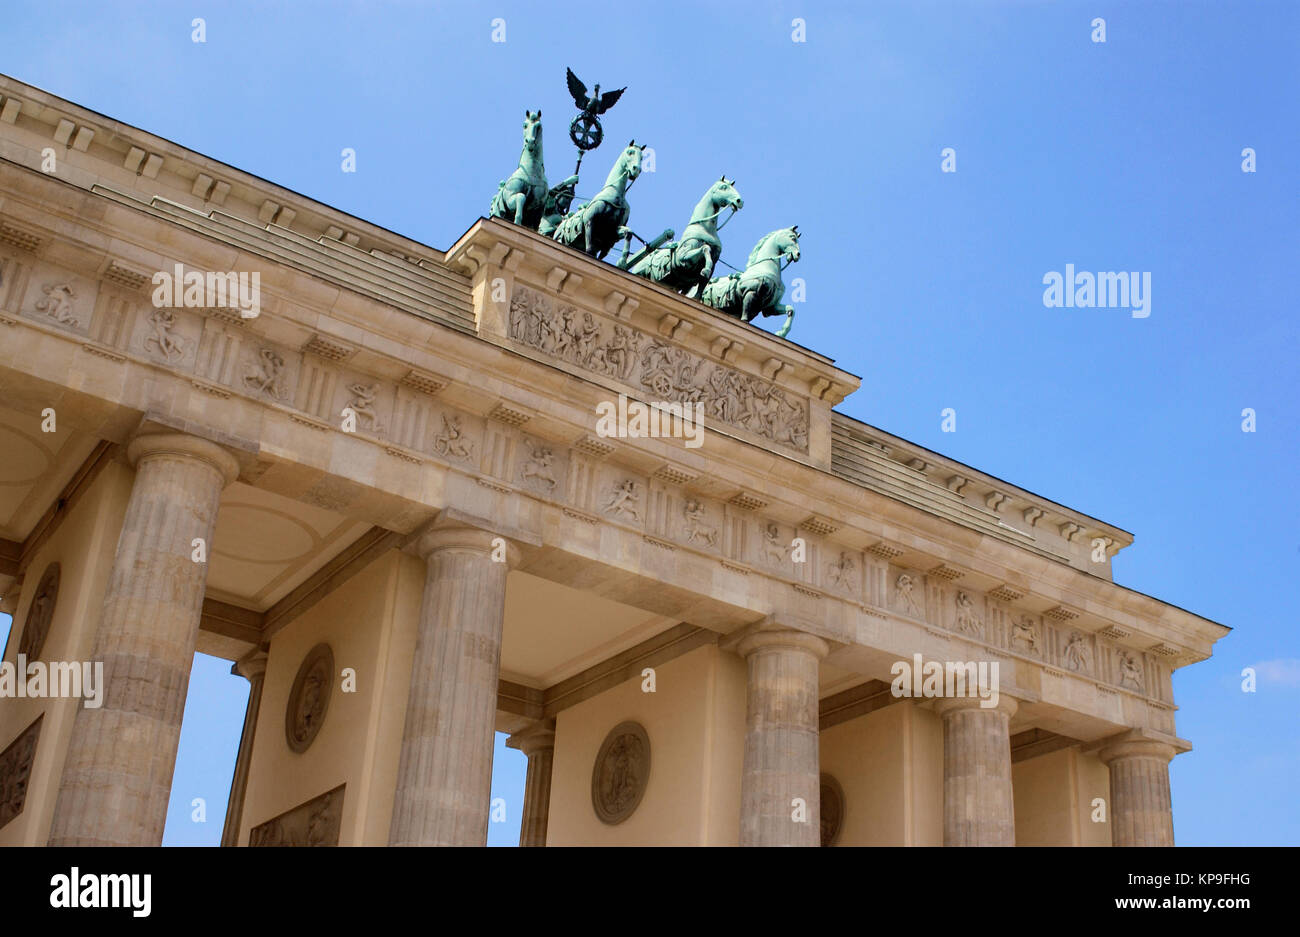 The Brandenburg Gate in the city of Berlin in Germany. It is a former city gate and is now the only remaining gate - Stock Image